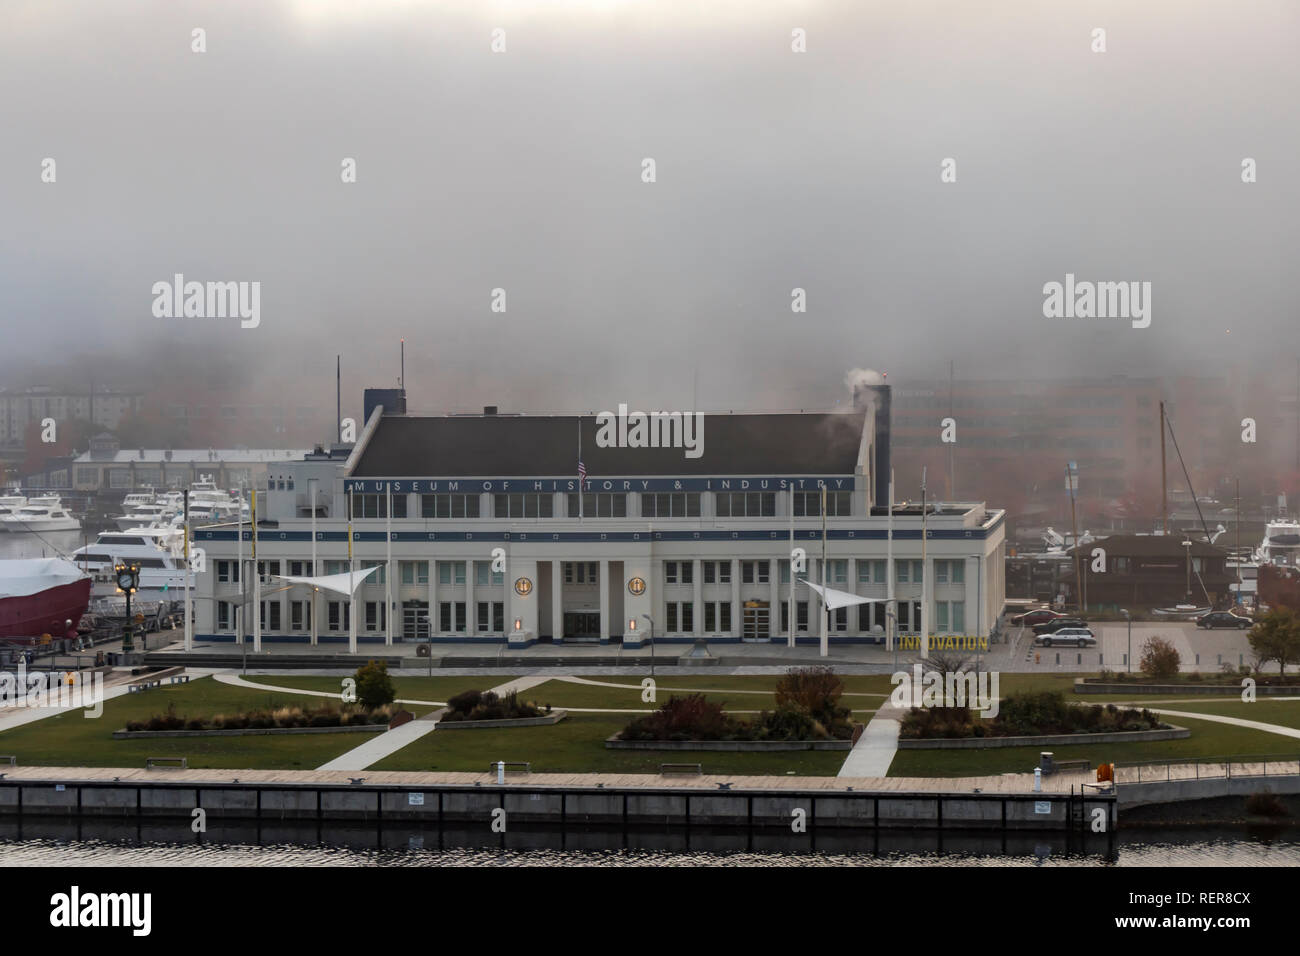 Seattle, Washington, USA - 27 October 2018. Lake Union and the Museum of History and Innovation on a misty autumn morning. - Stock Image